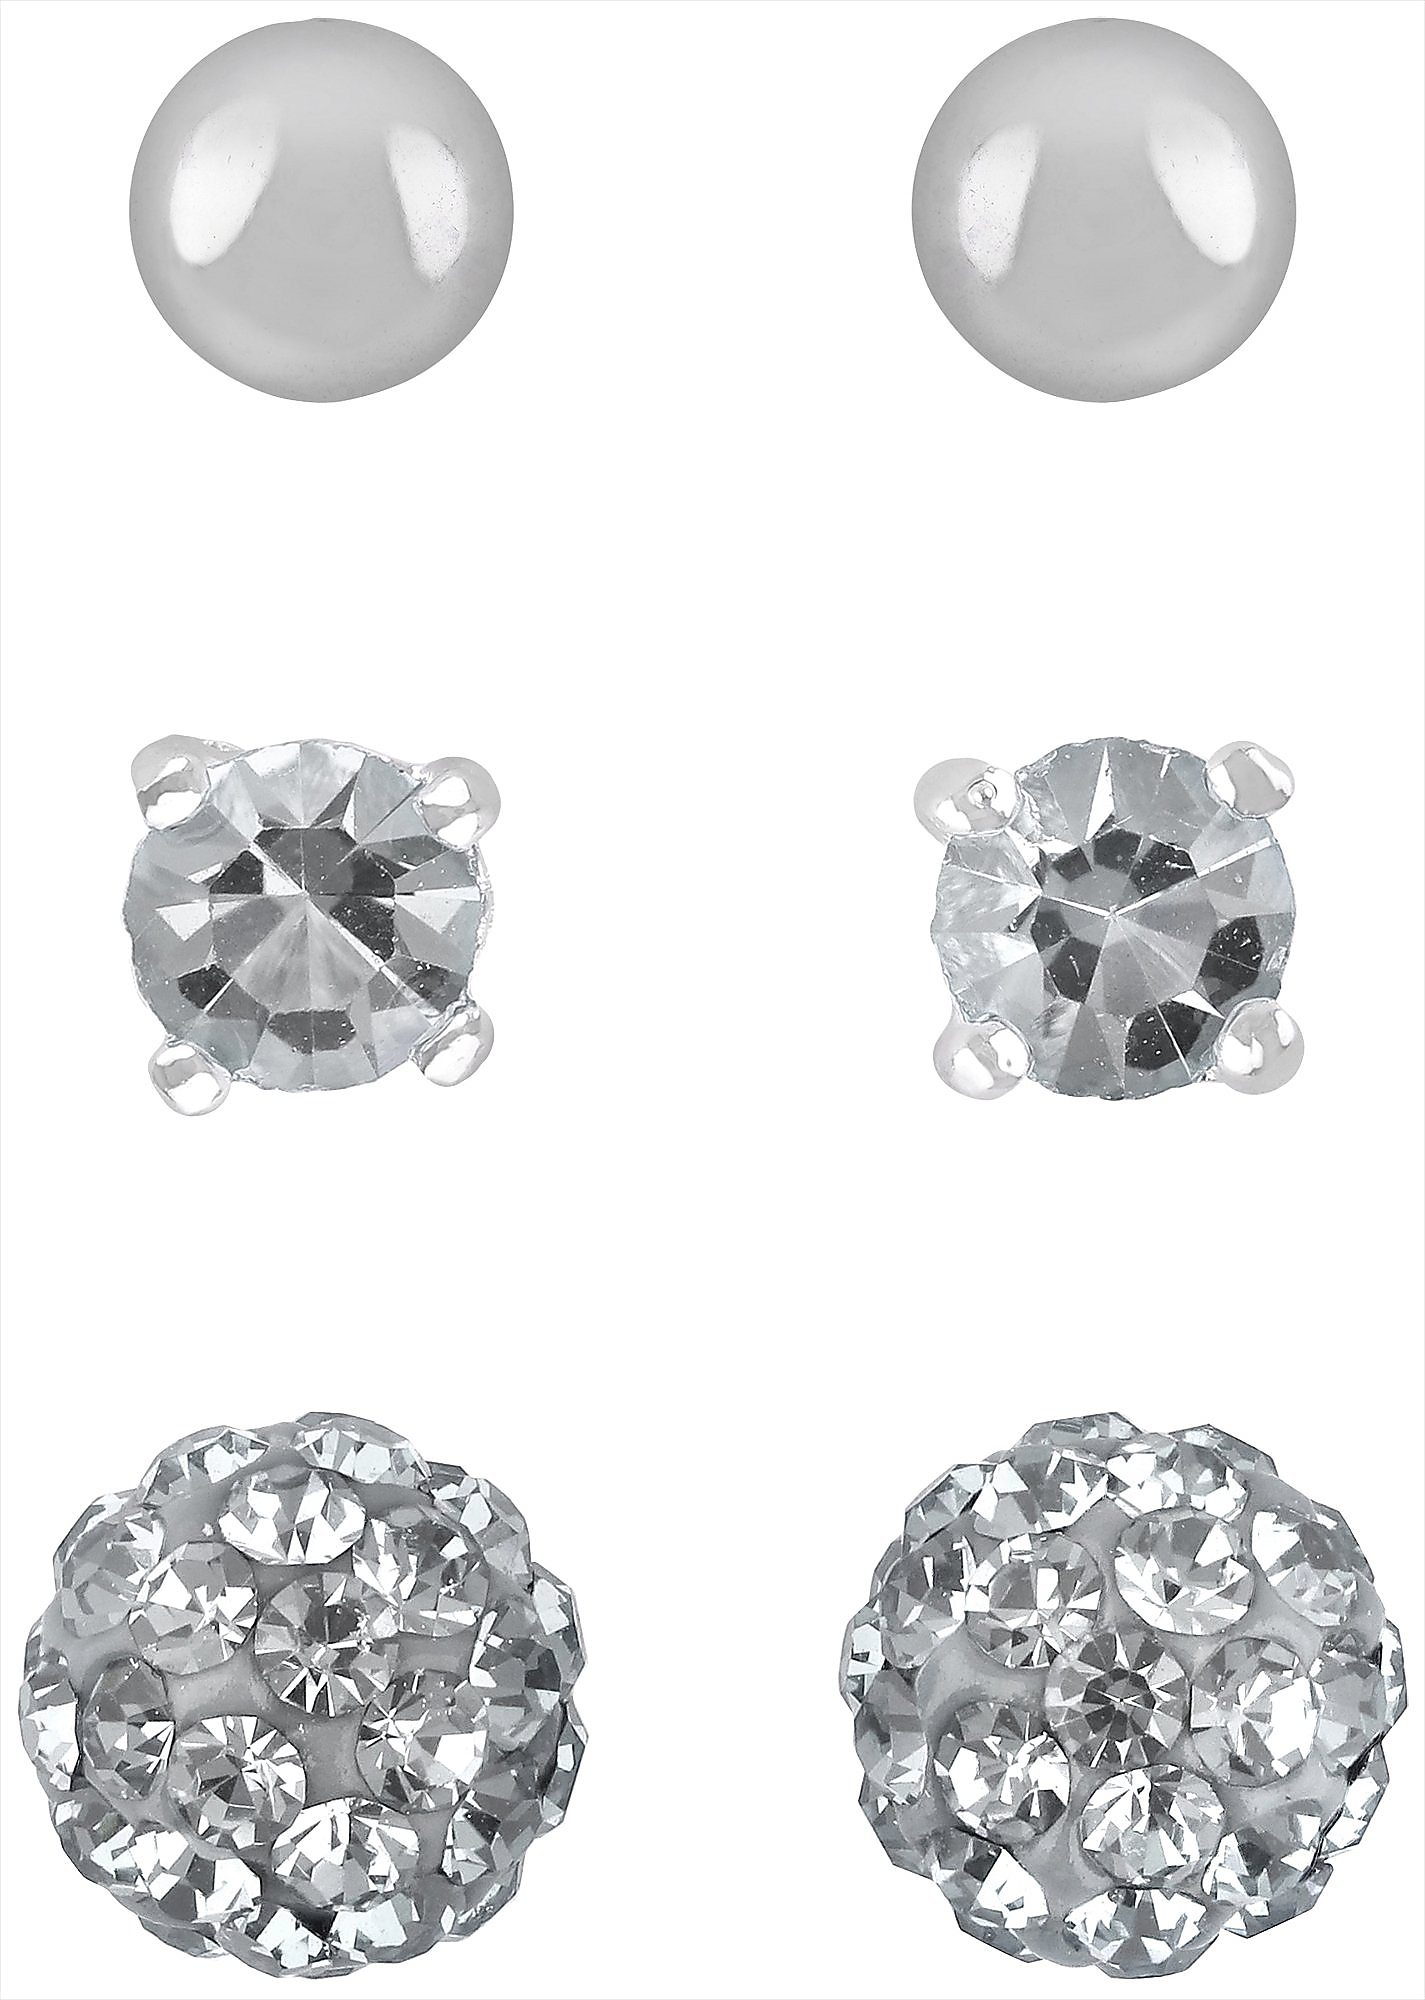 aa2c5a01c Details about Signature 3 Pair Cubic Zirconia Pave Ball Stud Earrings  Silver tone